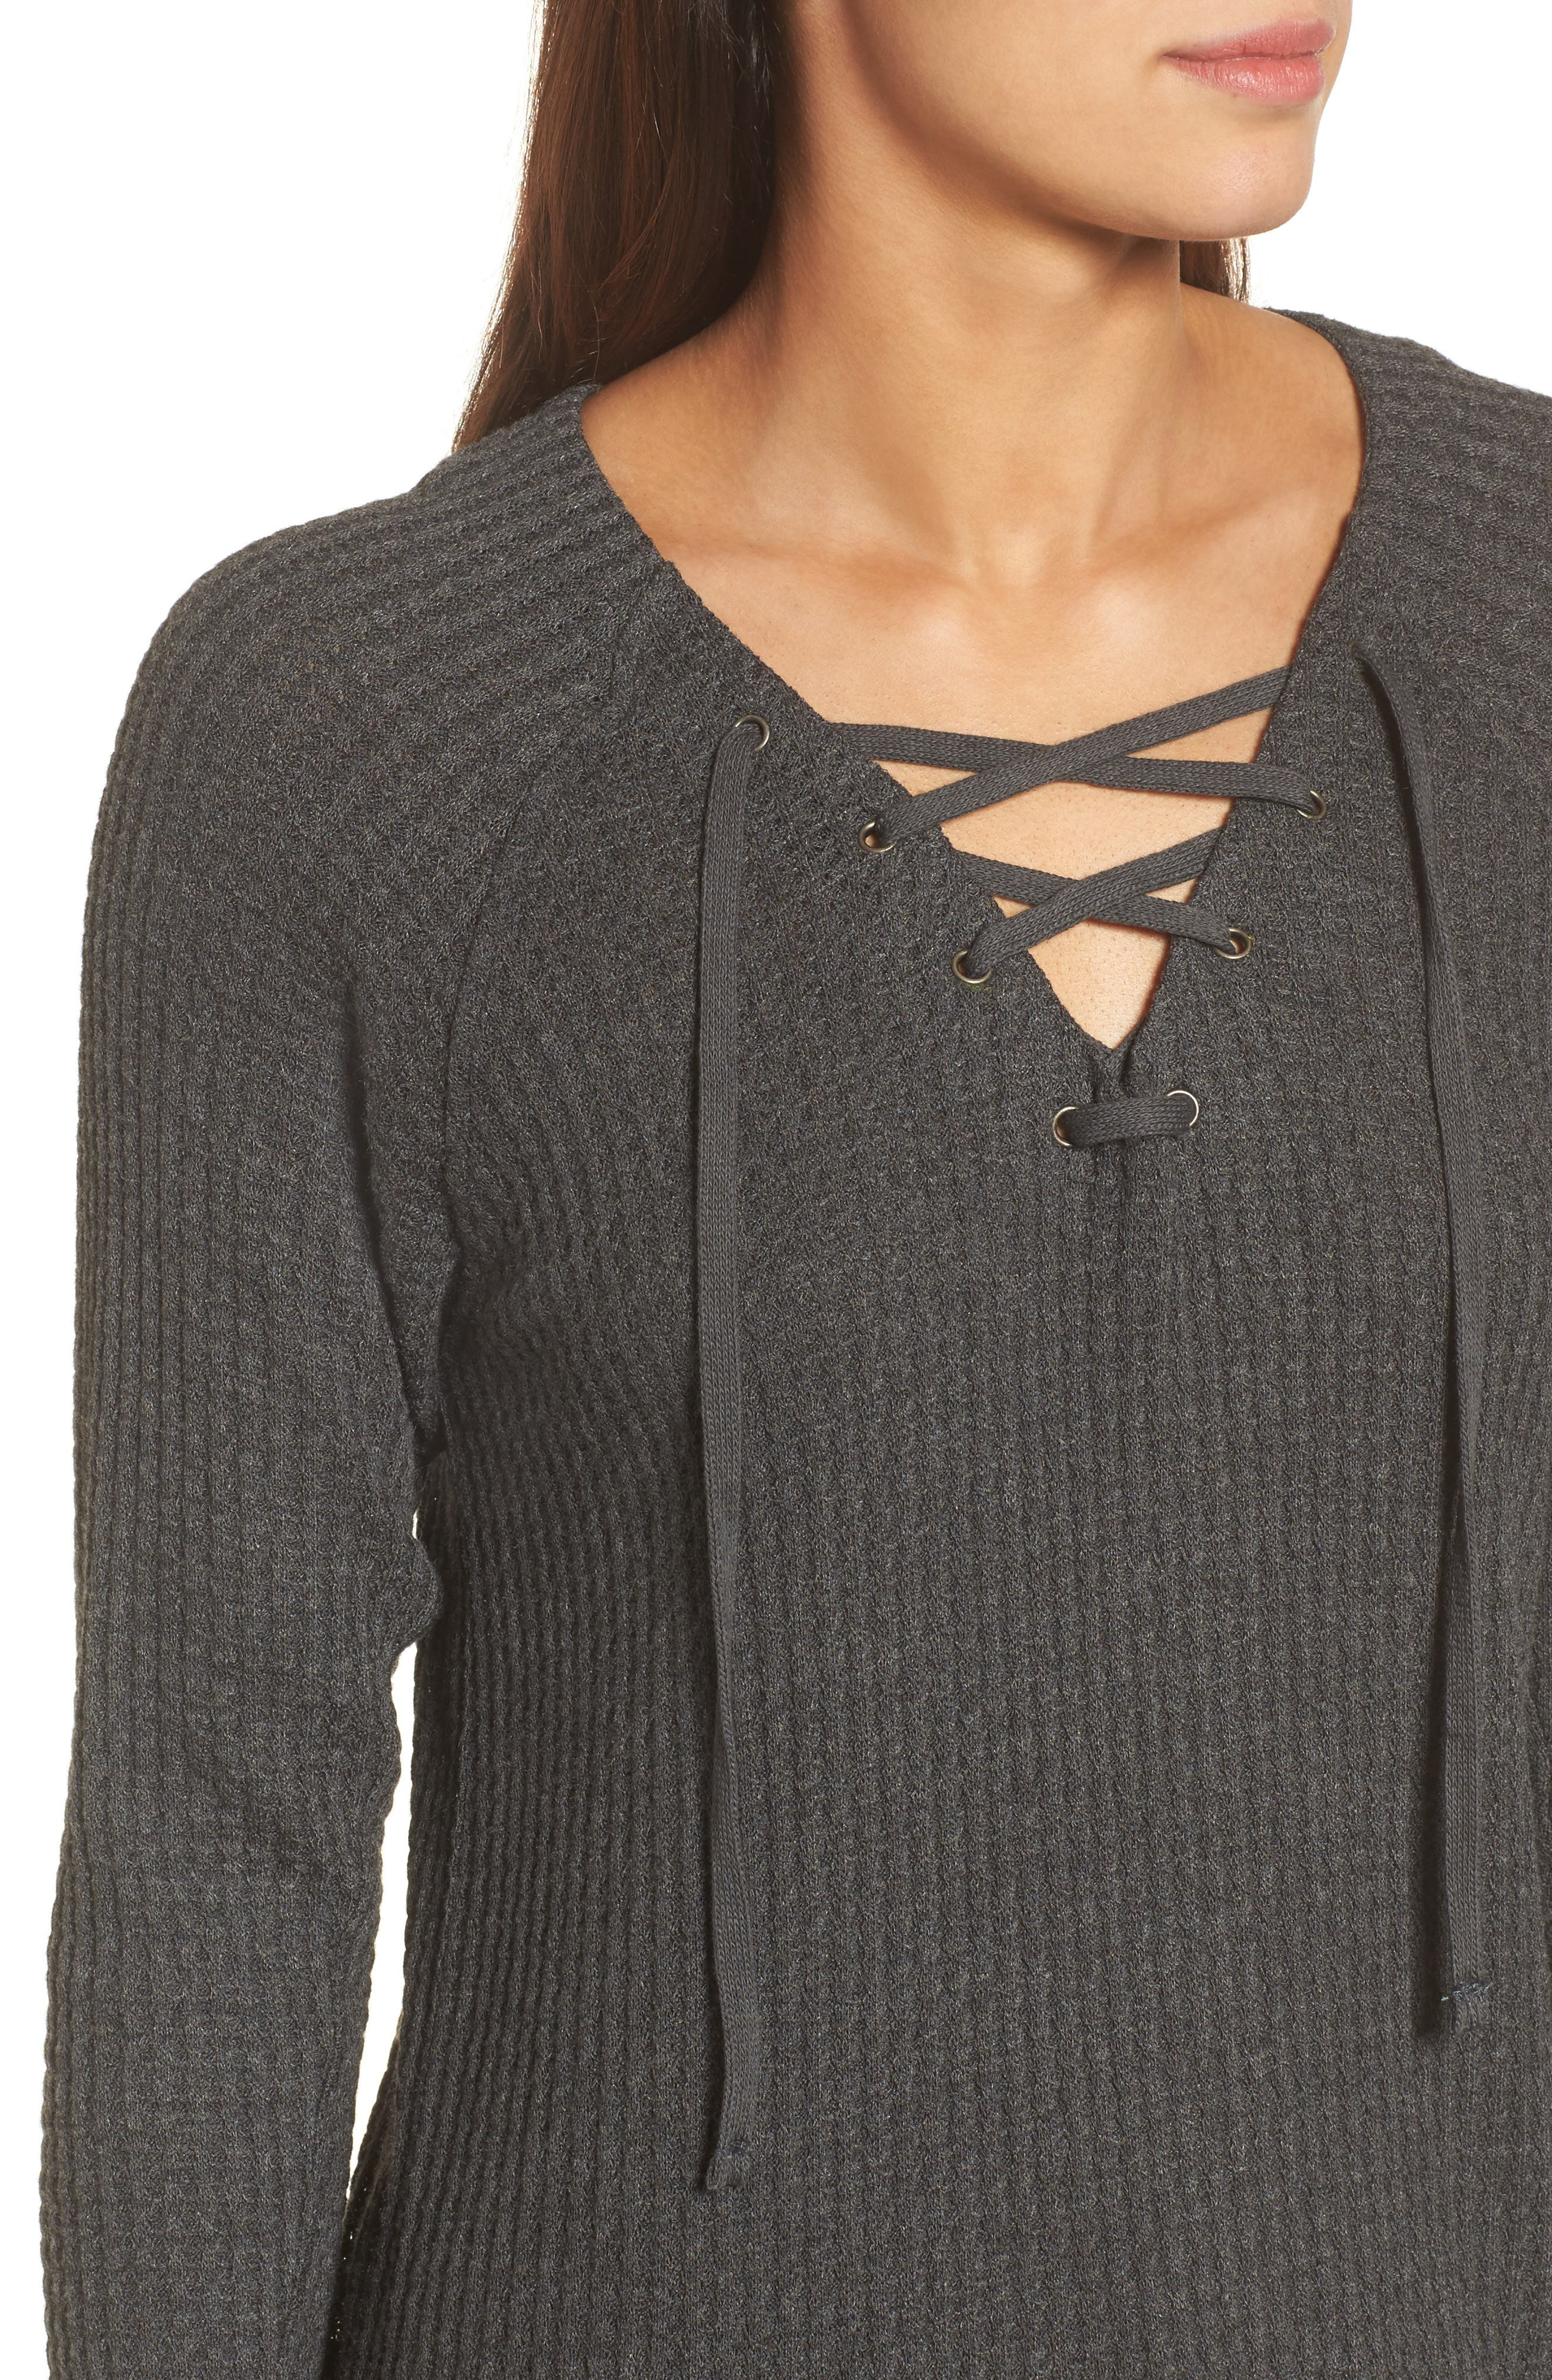 Thermal Knit Lace-Up Top,                             Alternate thumbnail 4, color,                             Anthracite